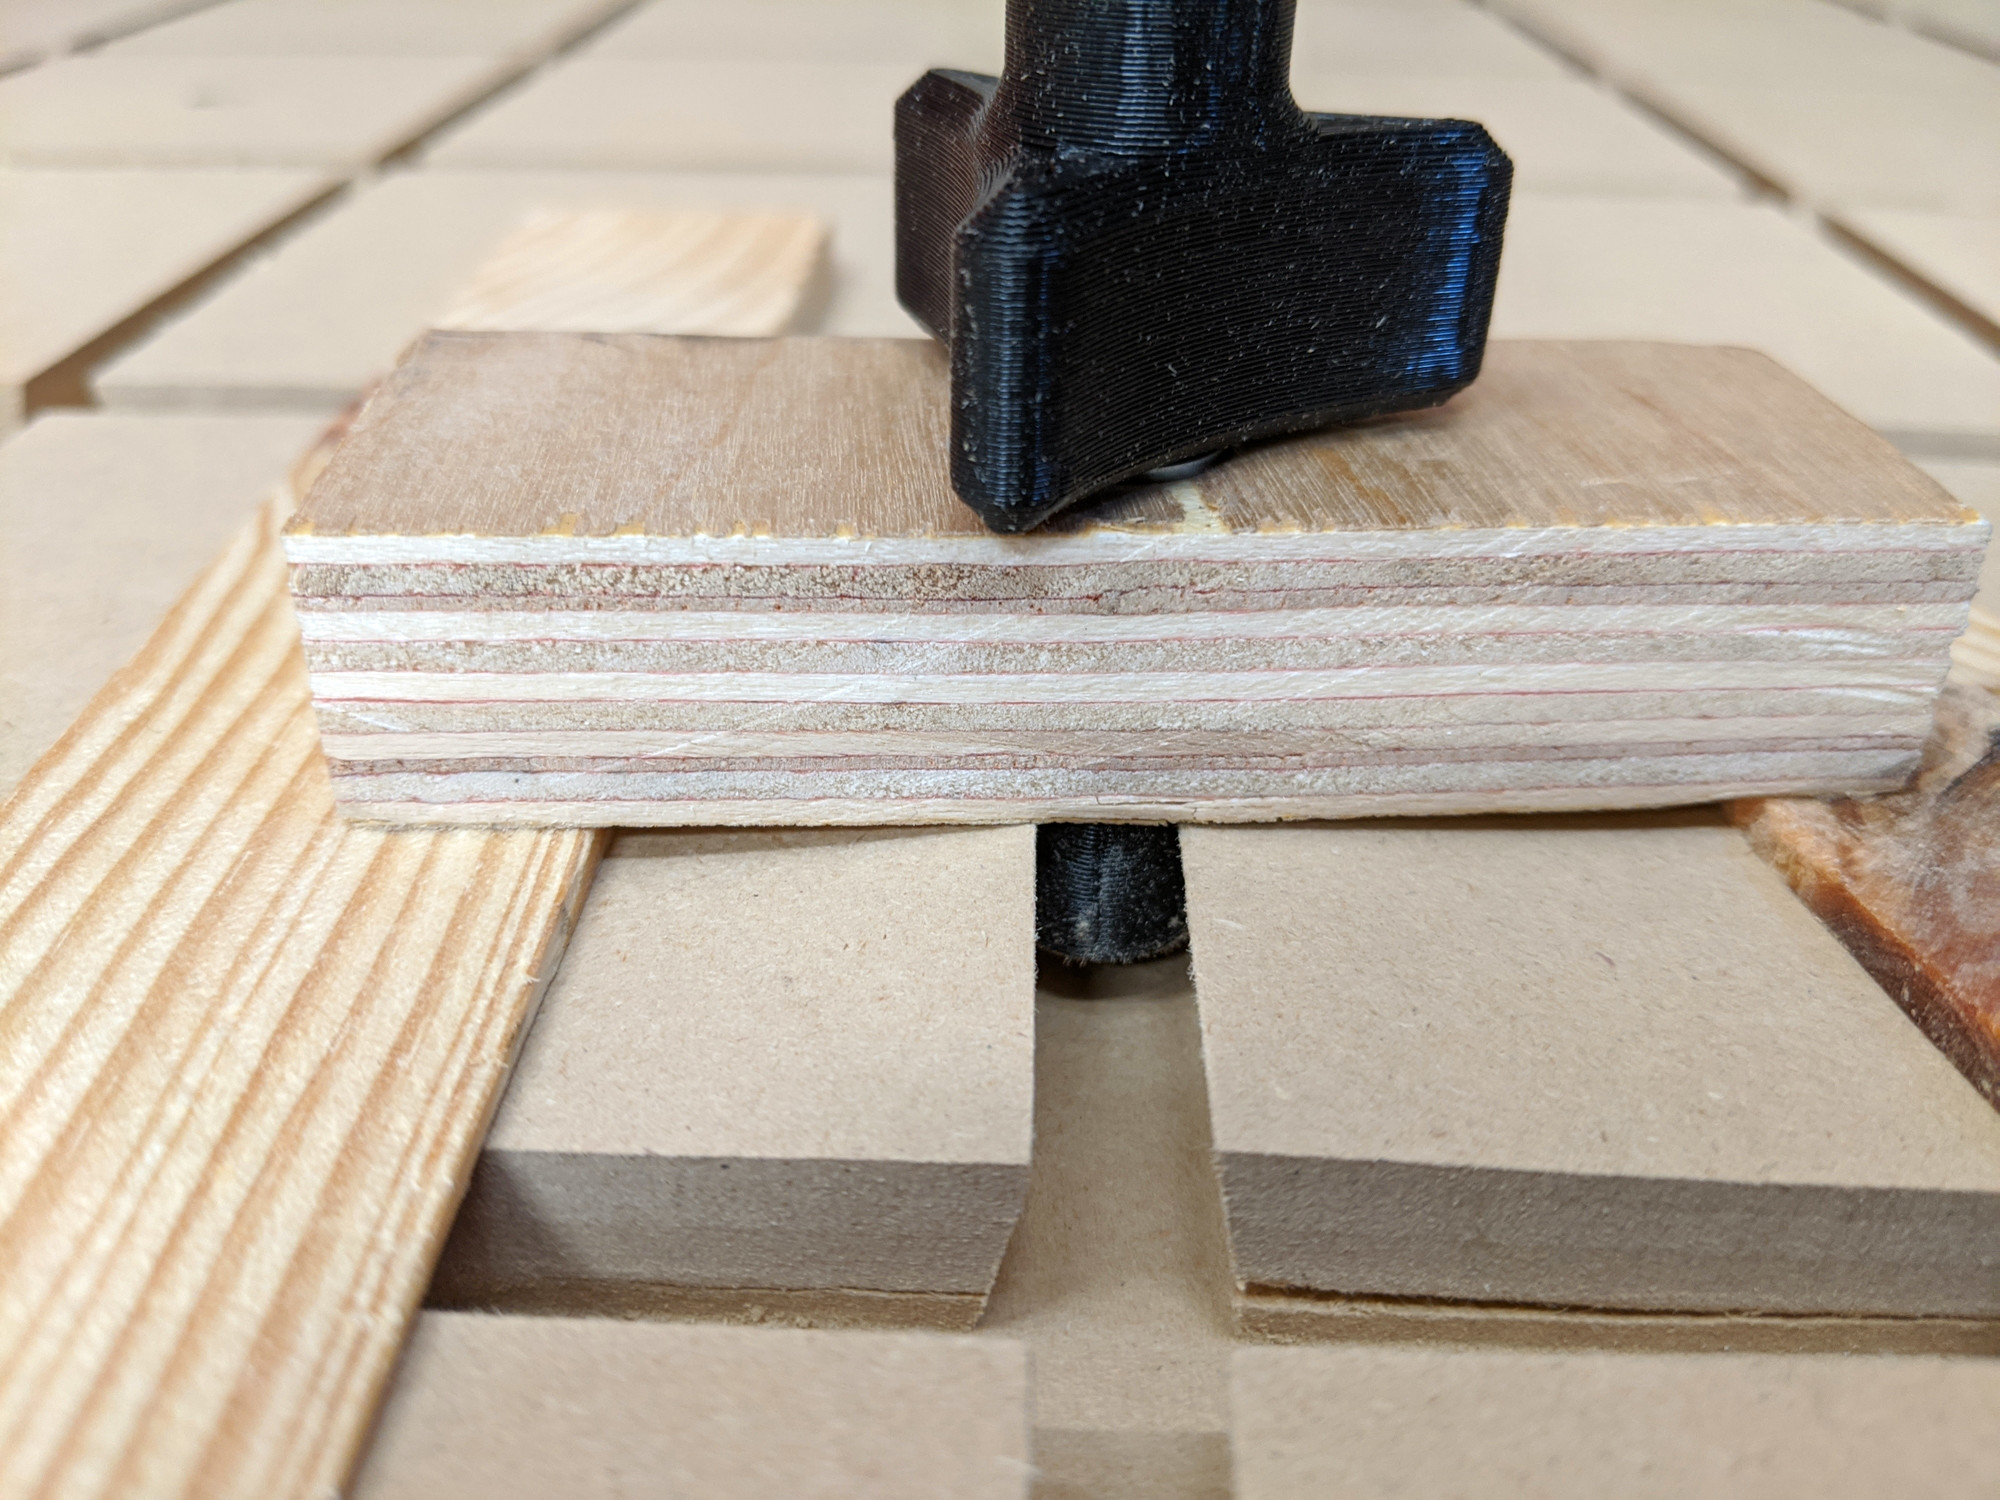 Dovetail tearout